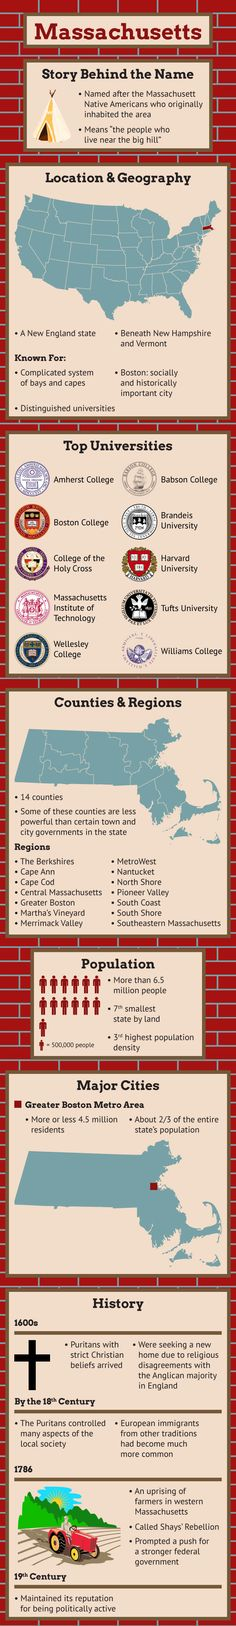 Massachusetts Facts